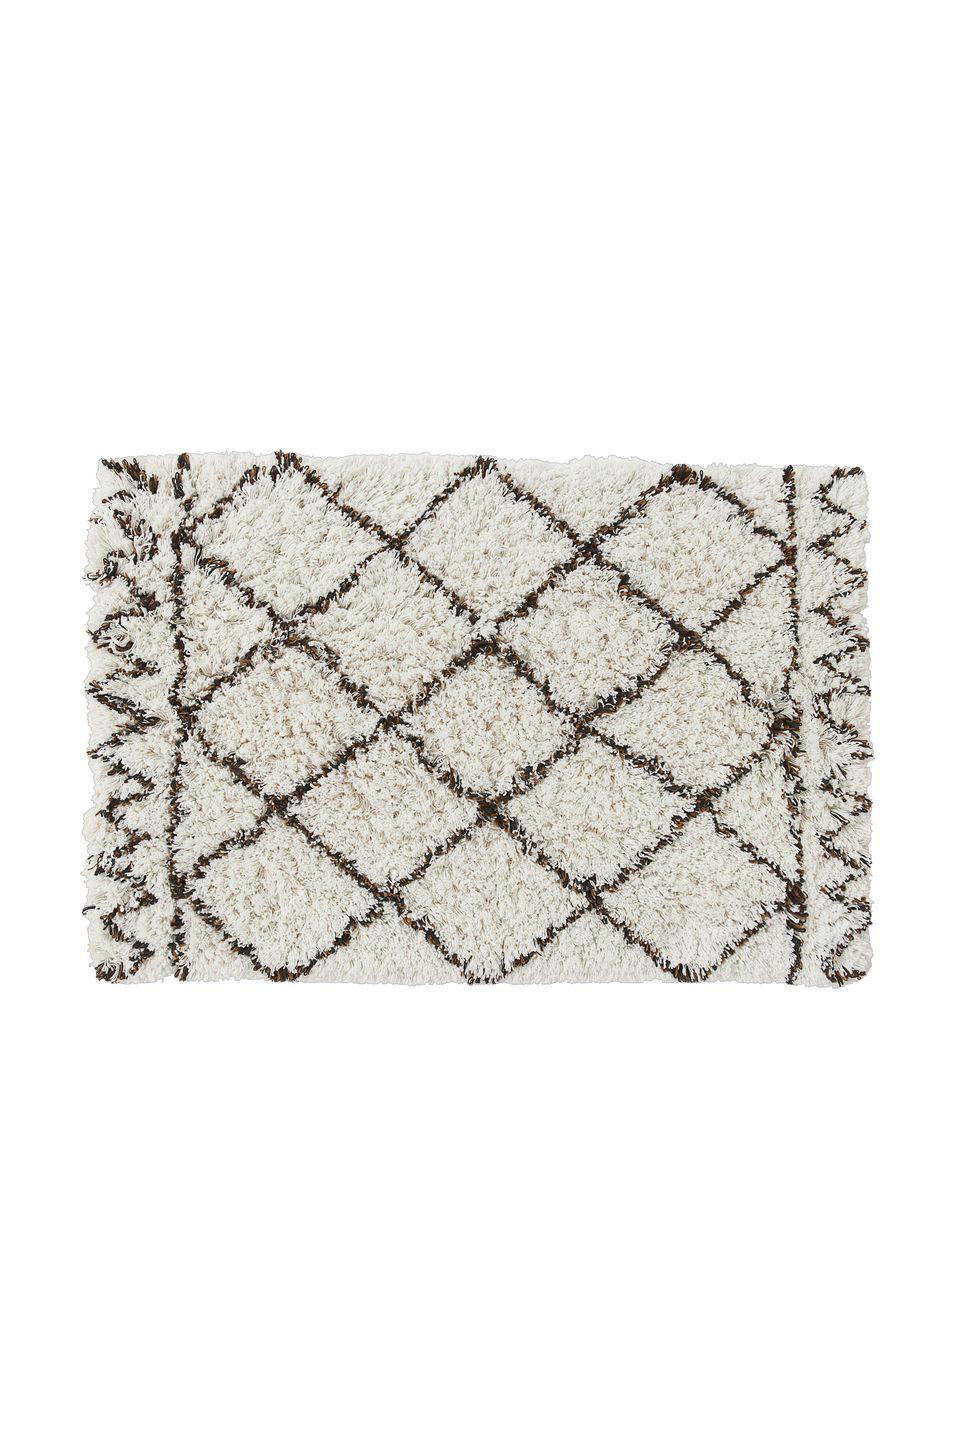 """<p>Alluding to the style of Berber rugs, made for more than 1,000 years by the Beni Ourain tribes in Morocco, this practical take on the traditional offers a deep-pile for luxurious bathroom comfort and non-slip feet. £17.99, <a href=""""https://www2.hm.com/en_gb/productpage.0759554001.html"""" rel=""""nofollow noopener"""" target=""""_blank"""" data-ylk=""""slk:hm.com"""" class=""""link rapid-noclick-resp"""">hm.com</a></p>"""